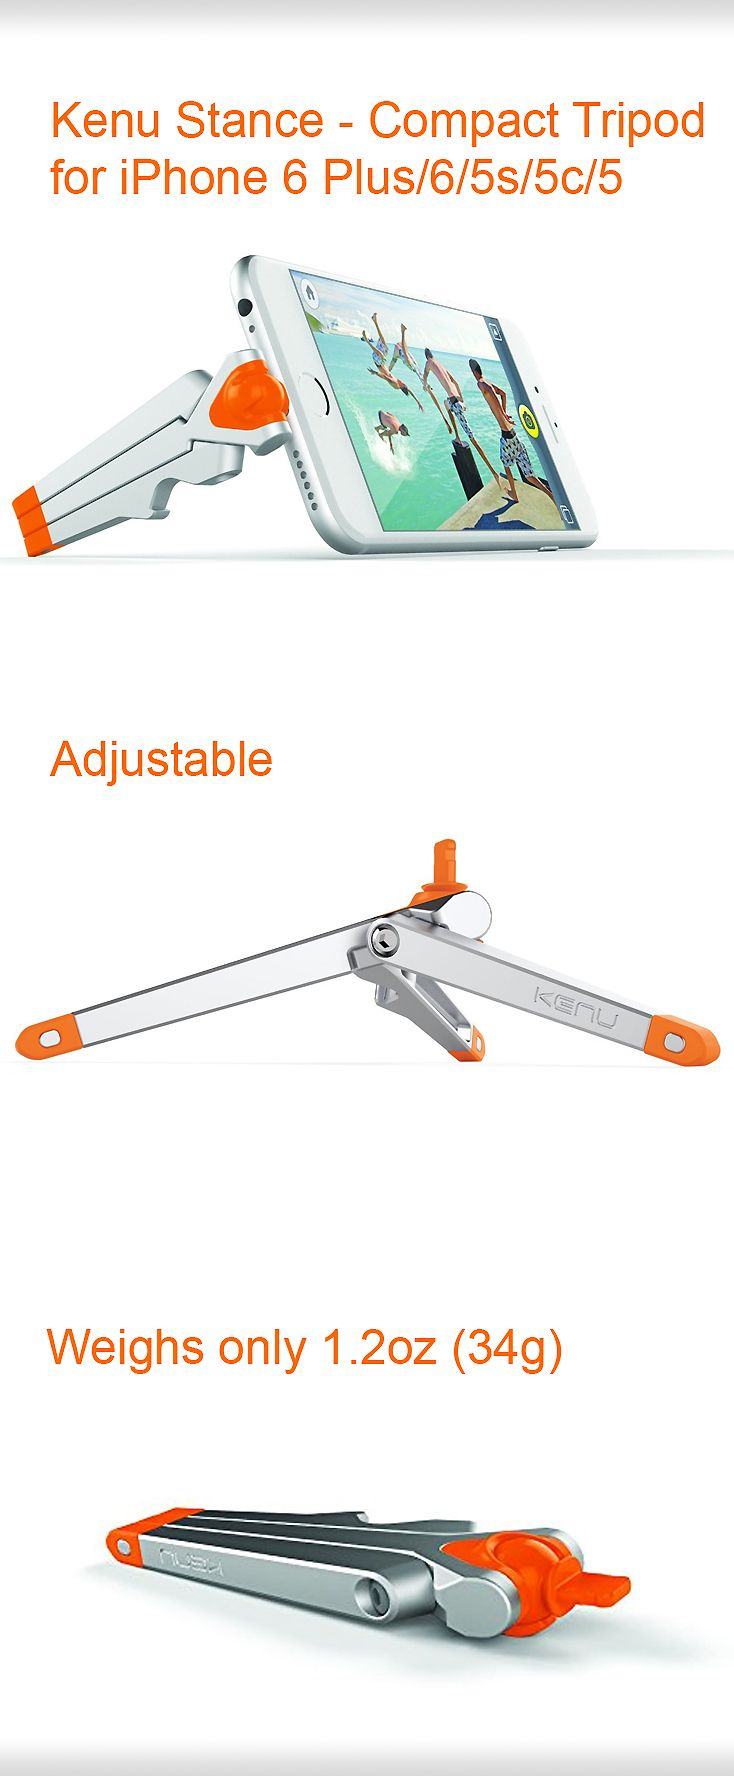 The Kenu Stance tripod for iphone 5 + take awesome pictures any place with this tiny tripod